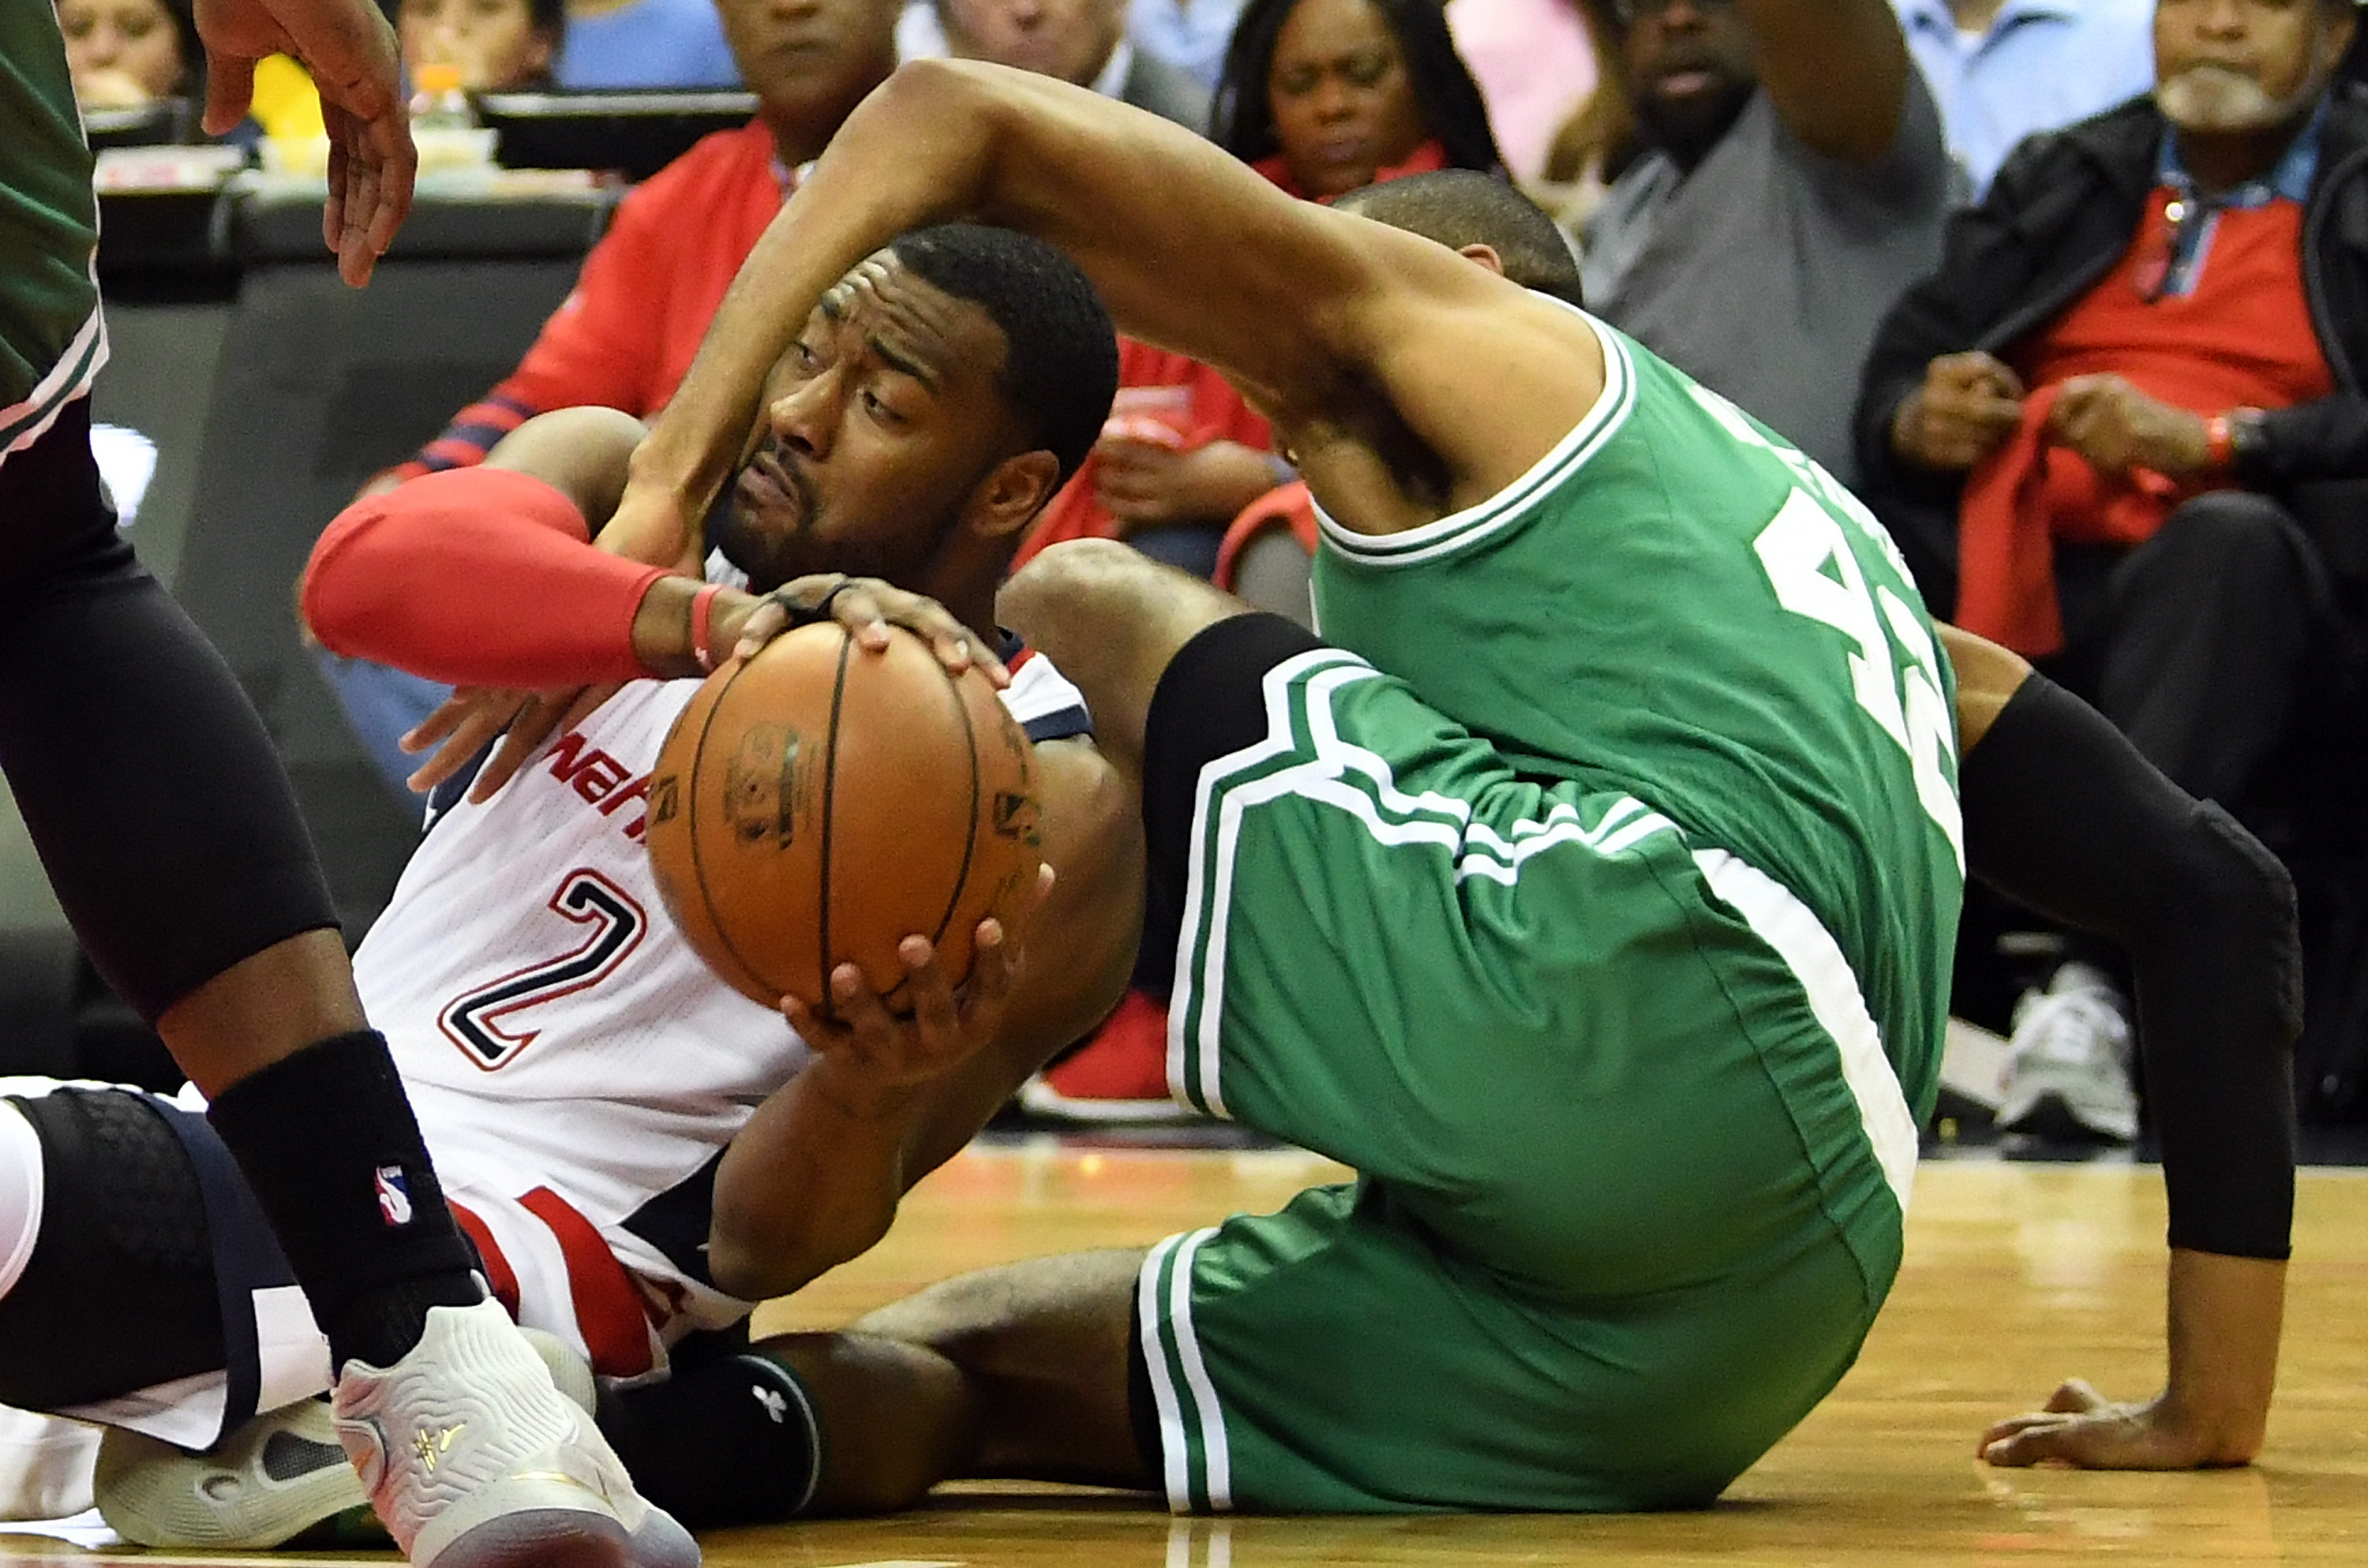 John Wall three-pointer sees Washington Wizards take Boston Celtics the distance